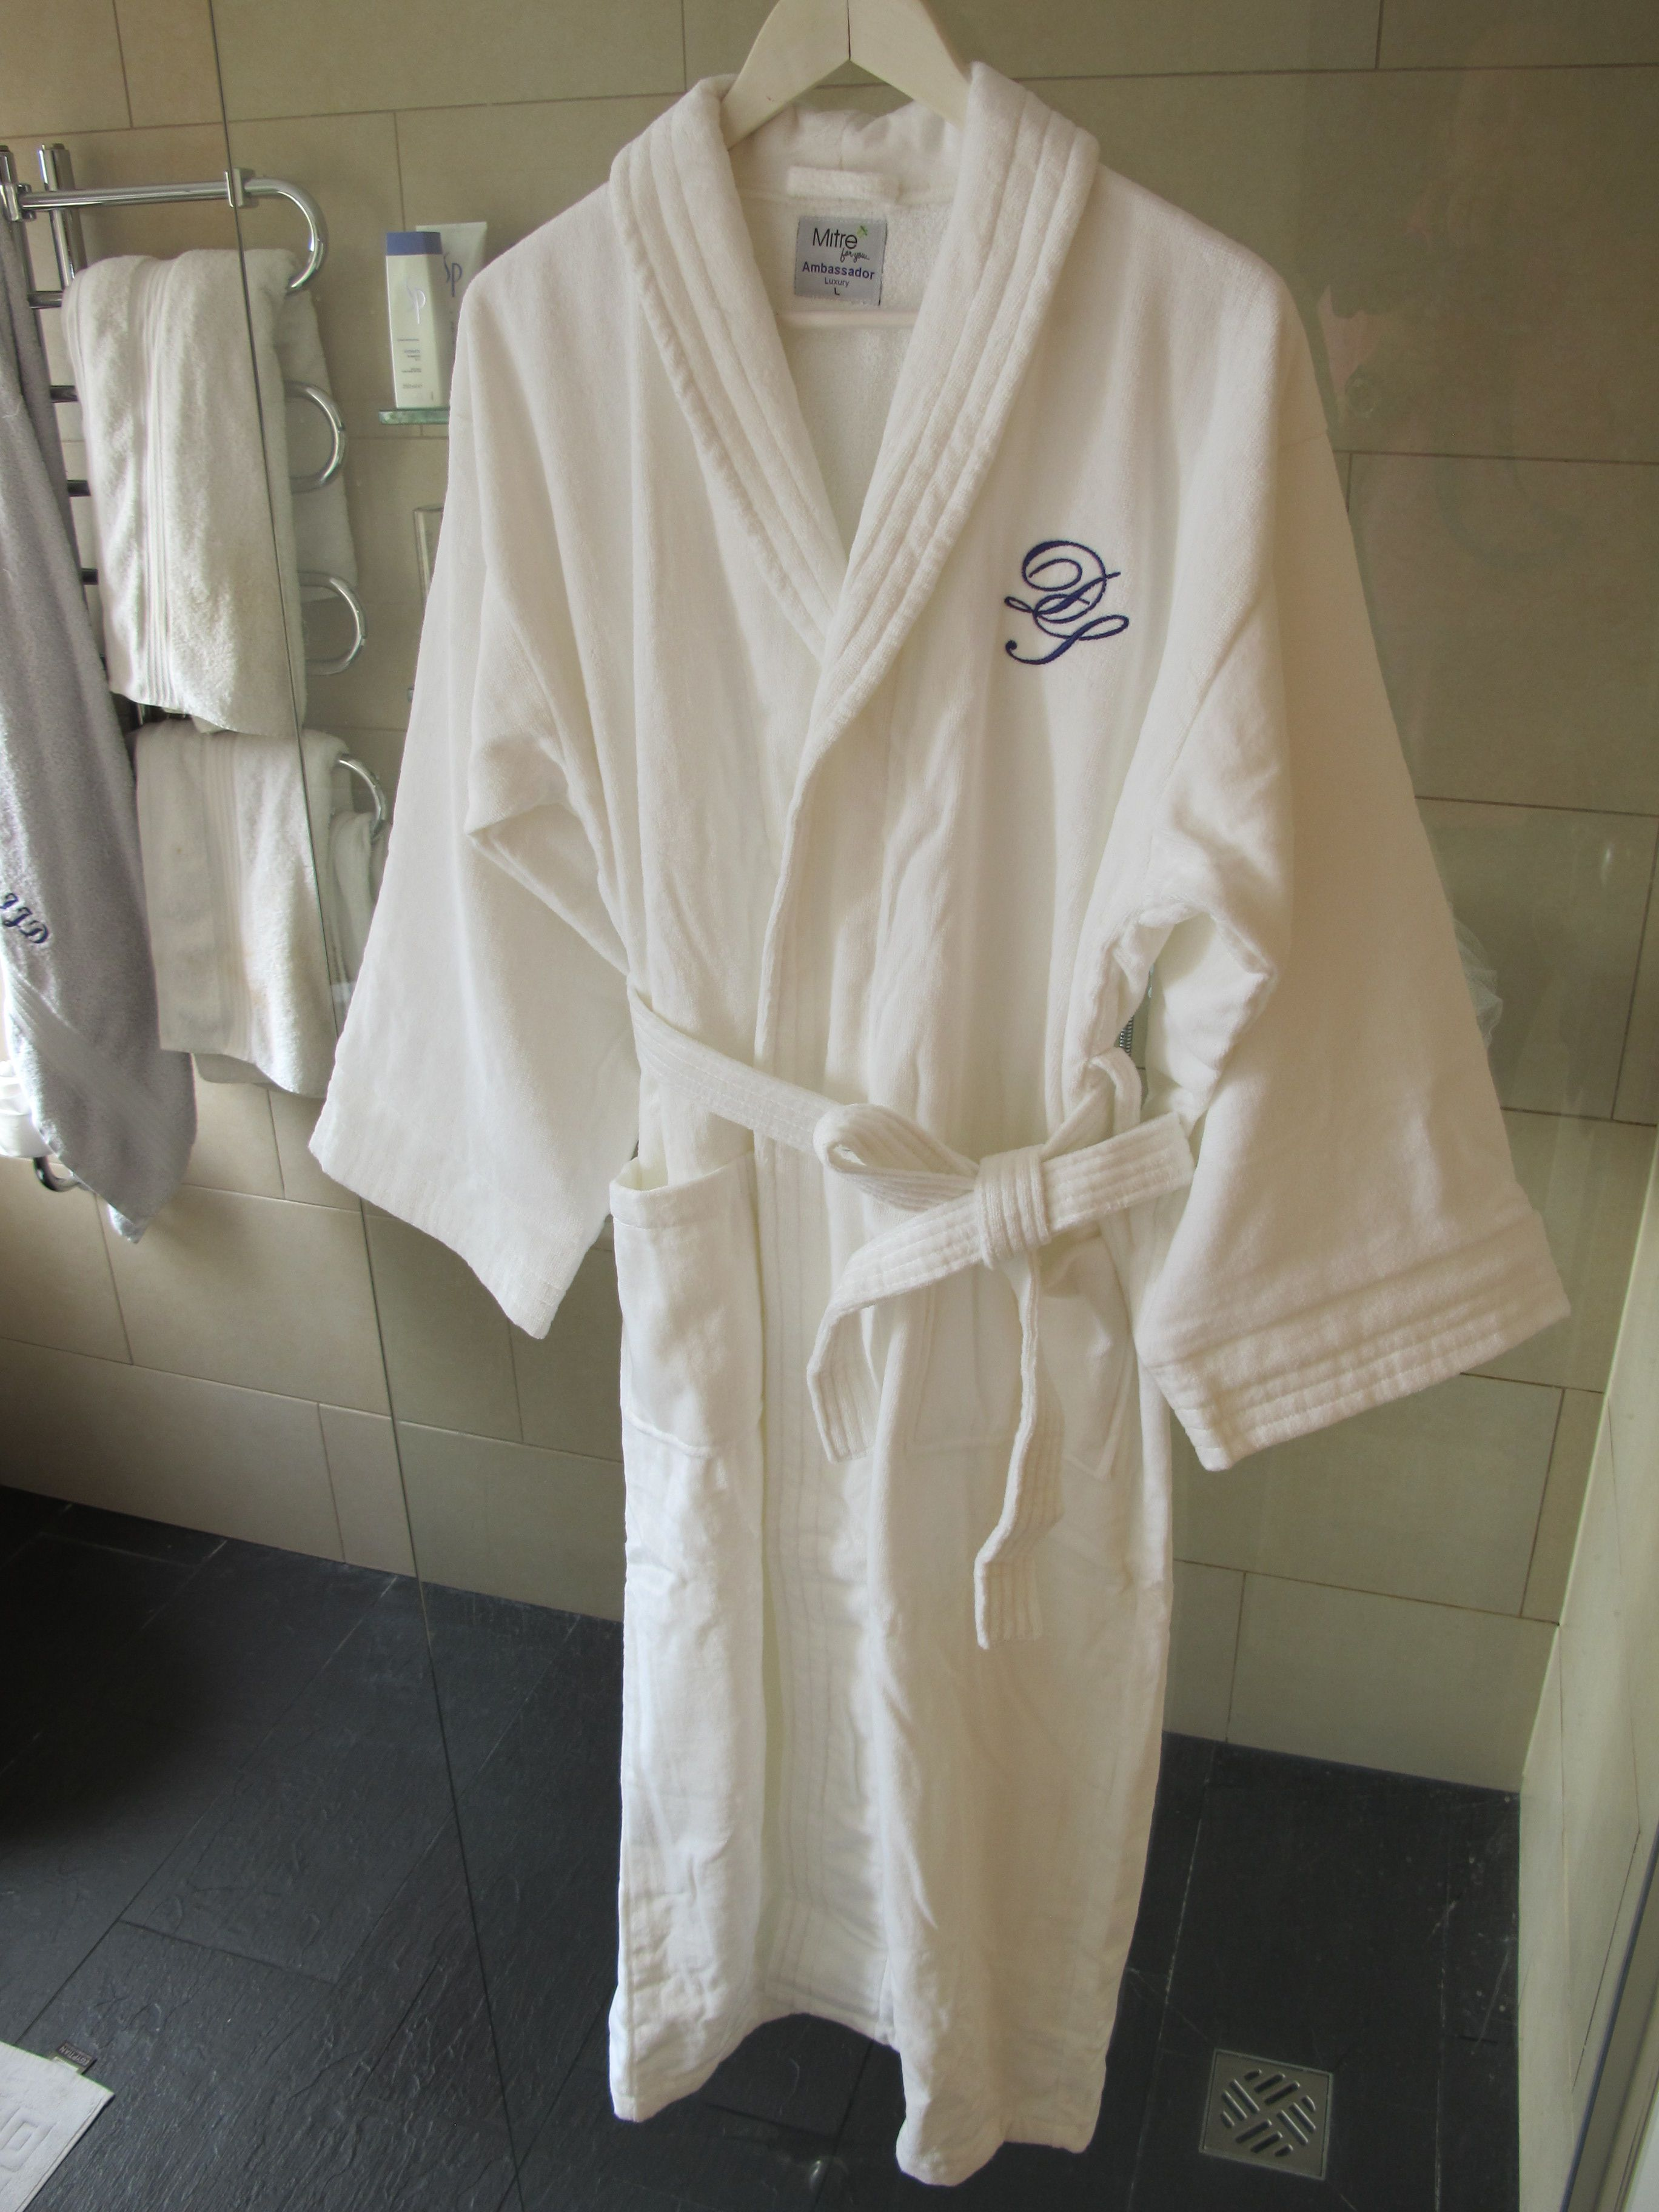 Snuggle up this Christmas in your very own personalised 100% Turkish cotton Velour Bathrobe